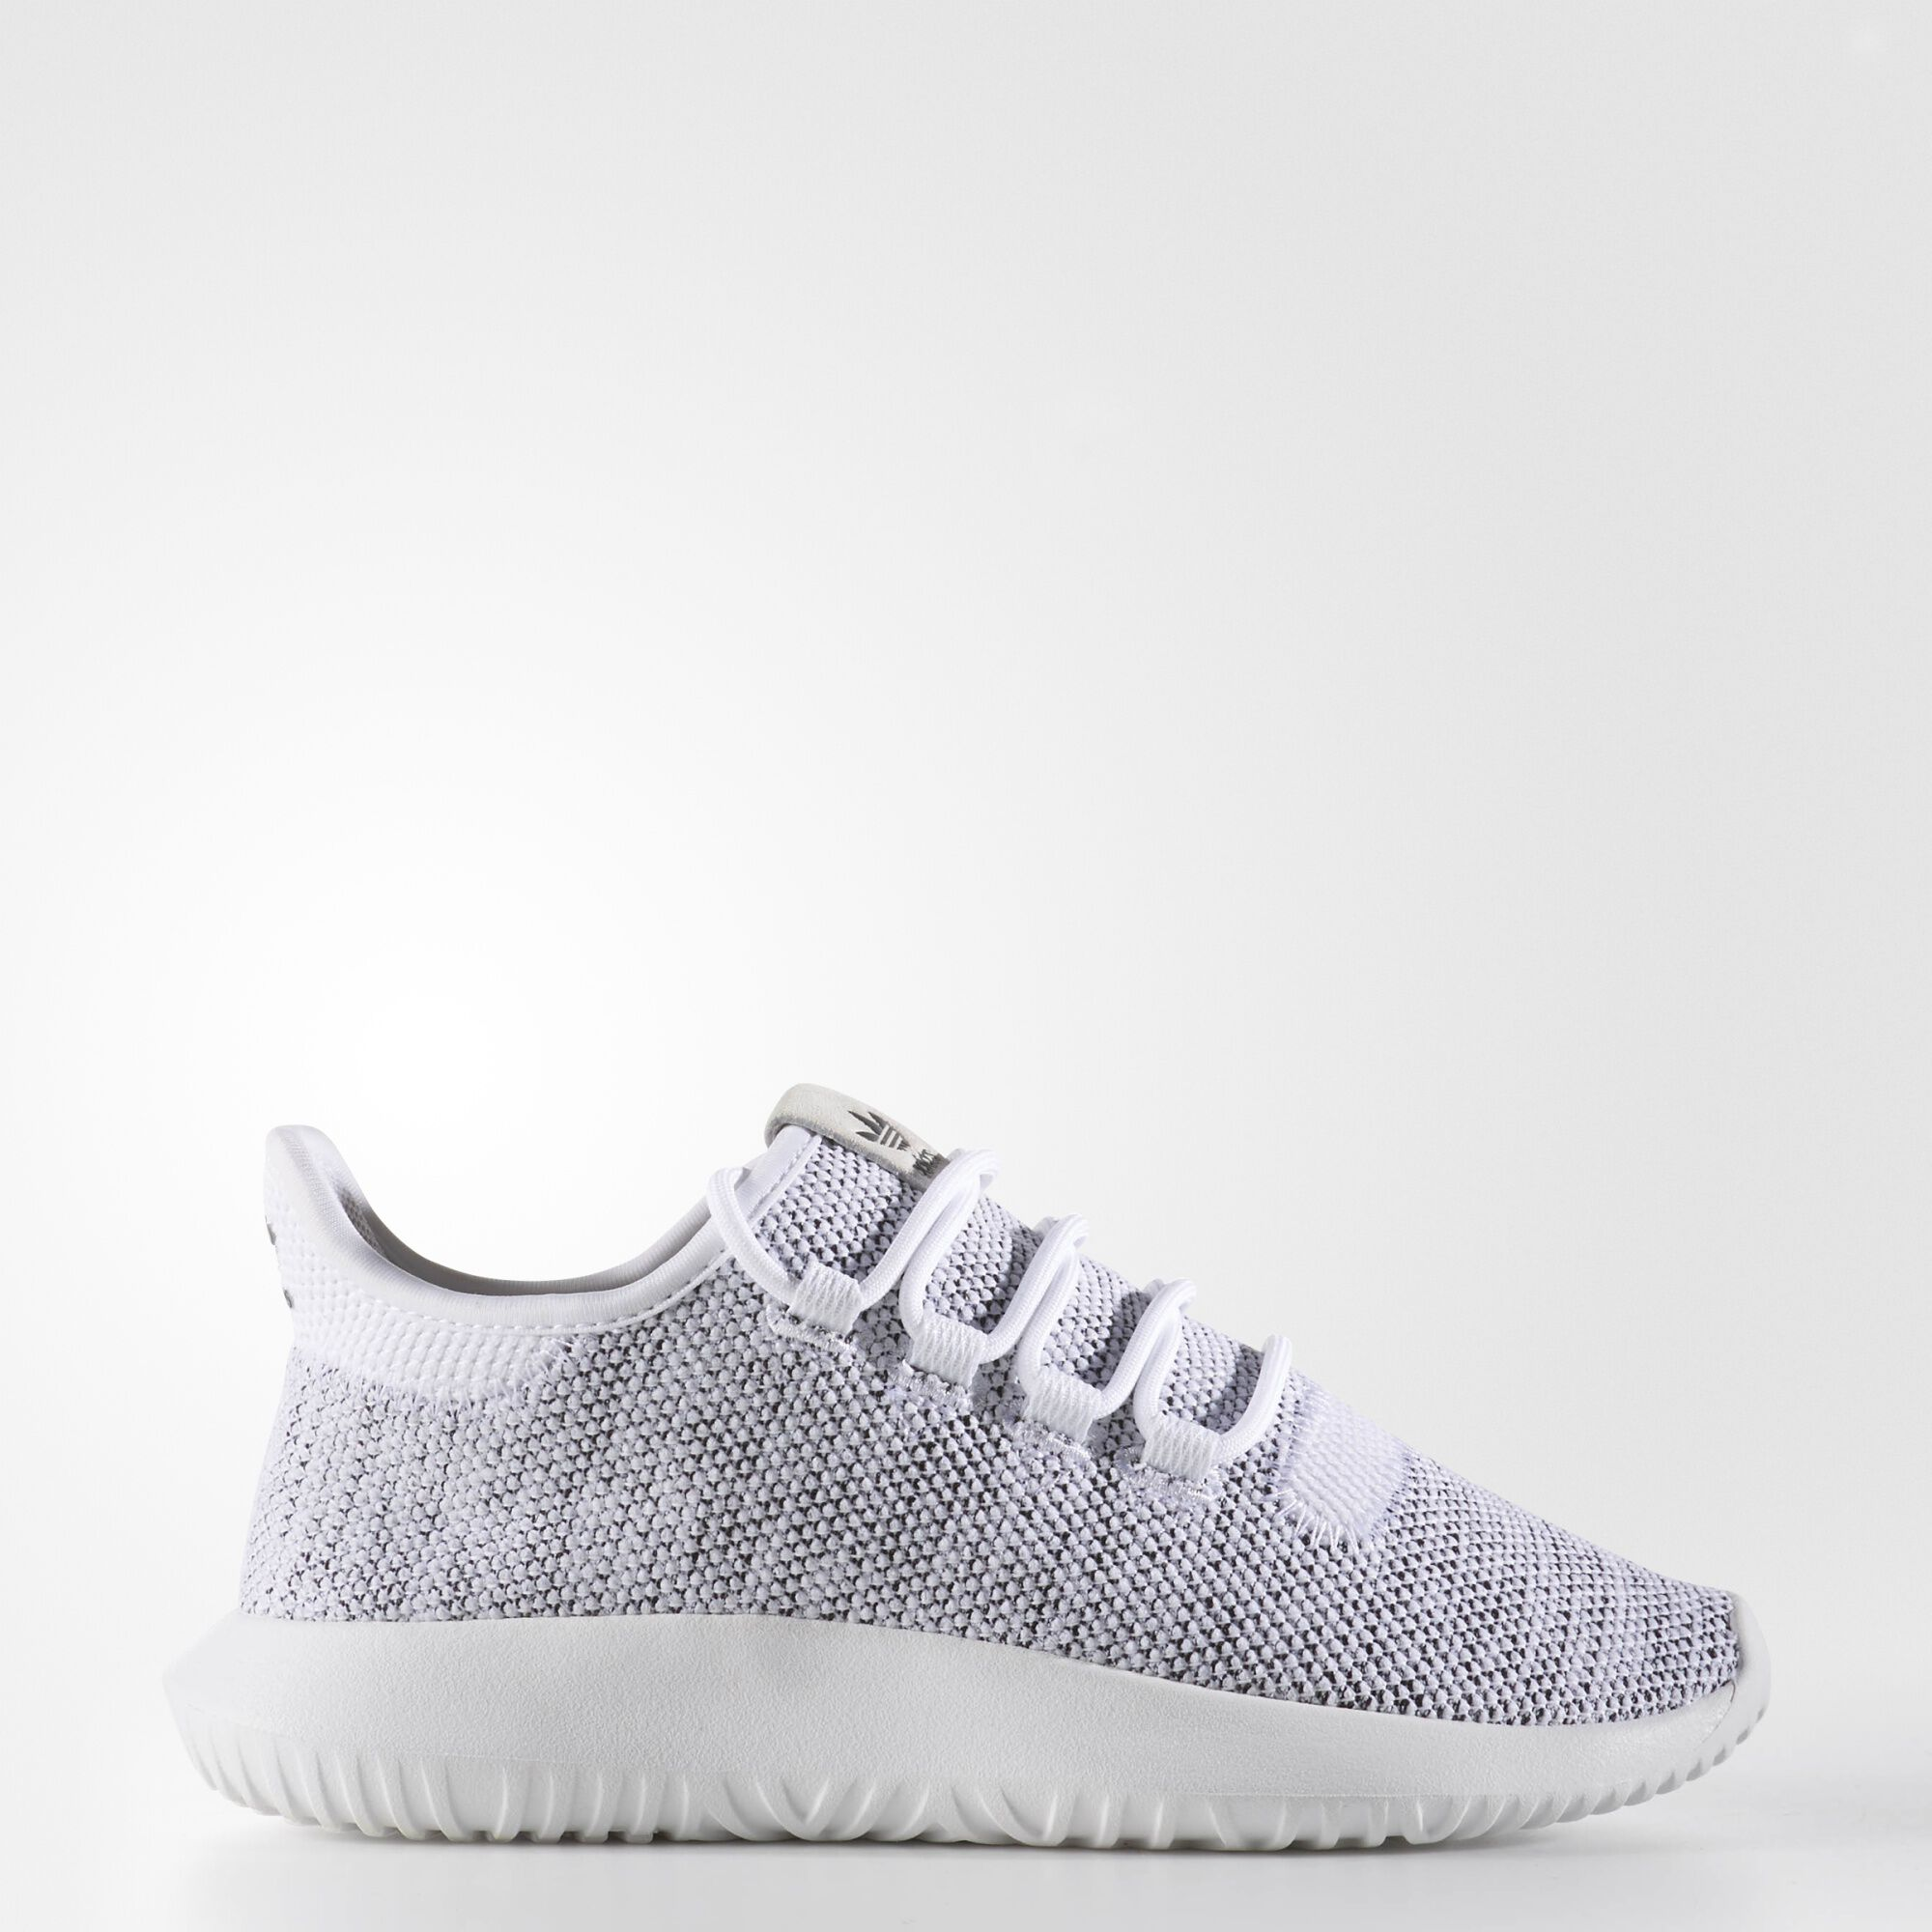 Shop: Adidas Tubular Runner